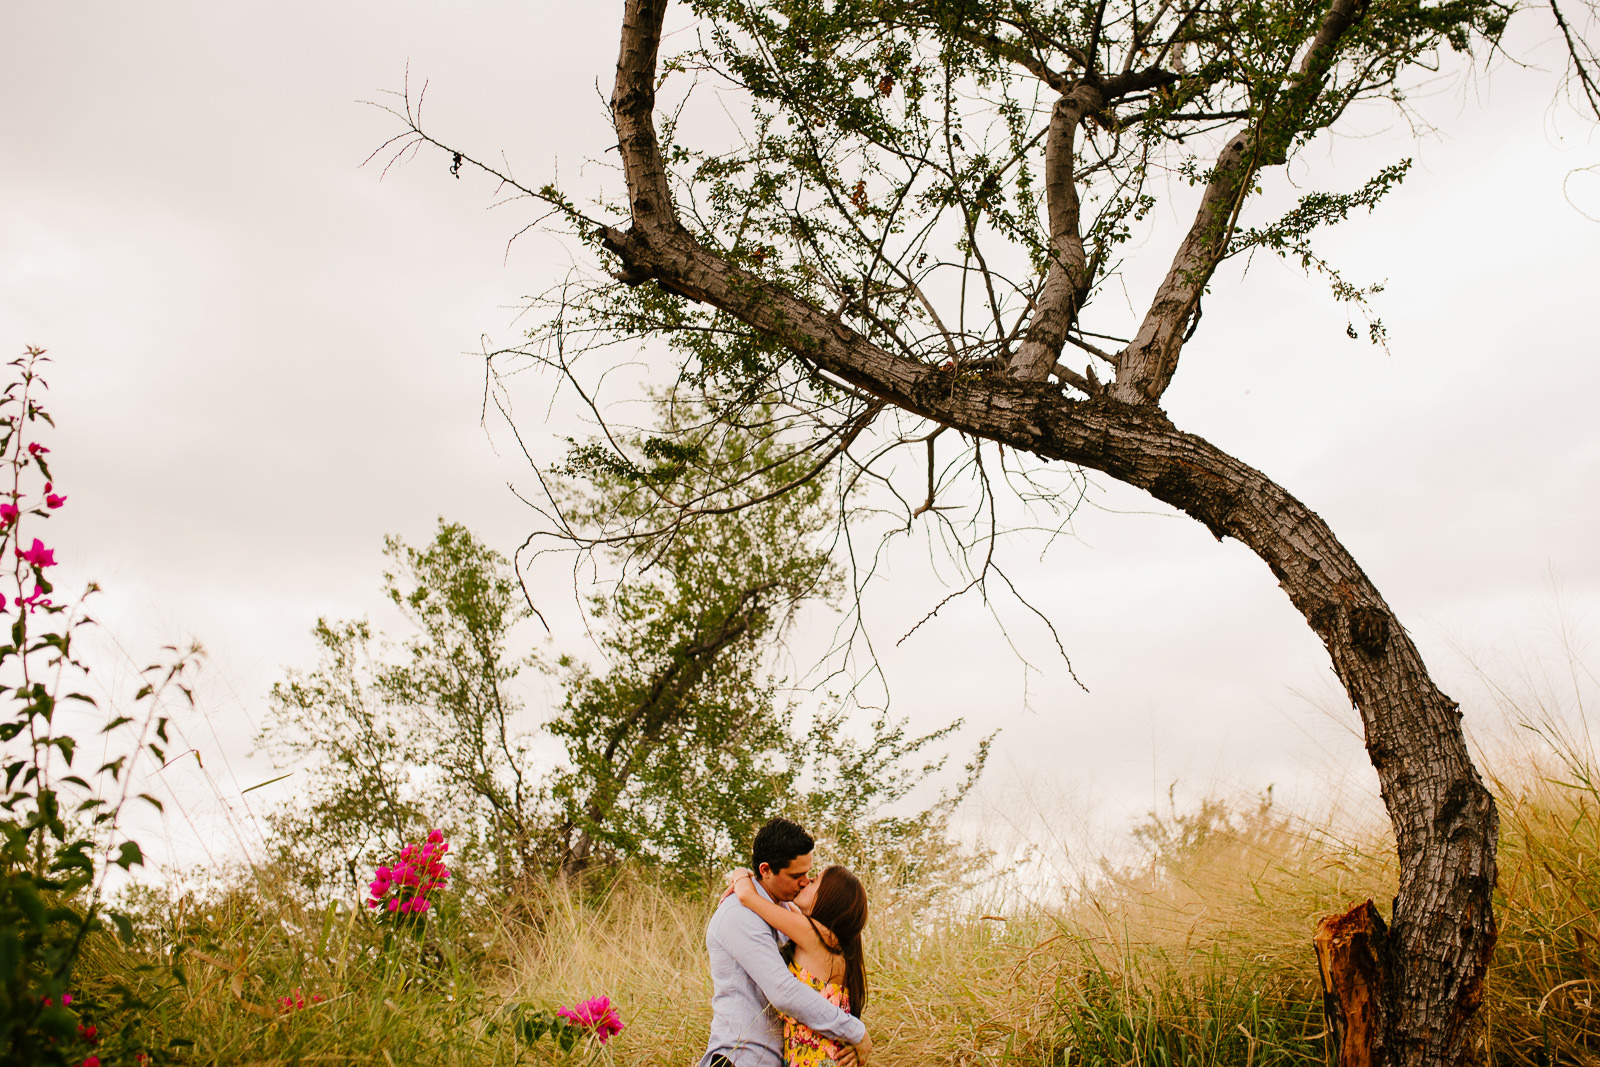 fotografo_mexico_wedding_photographer_esession_preboda_p+a_6